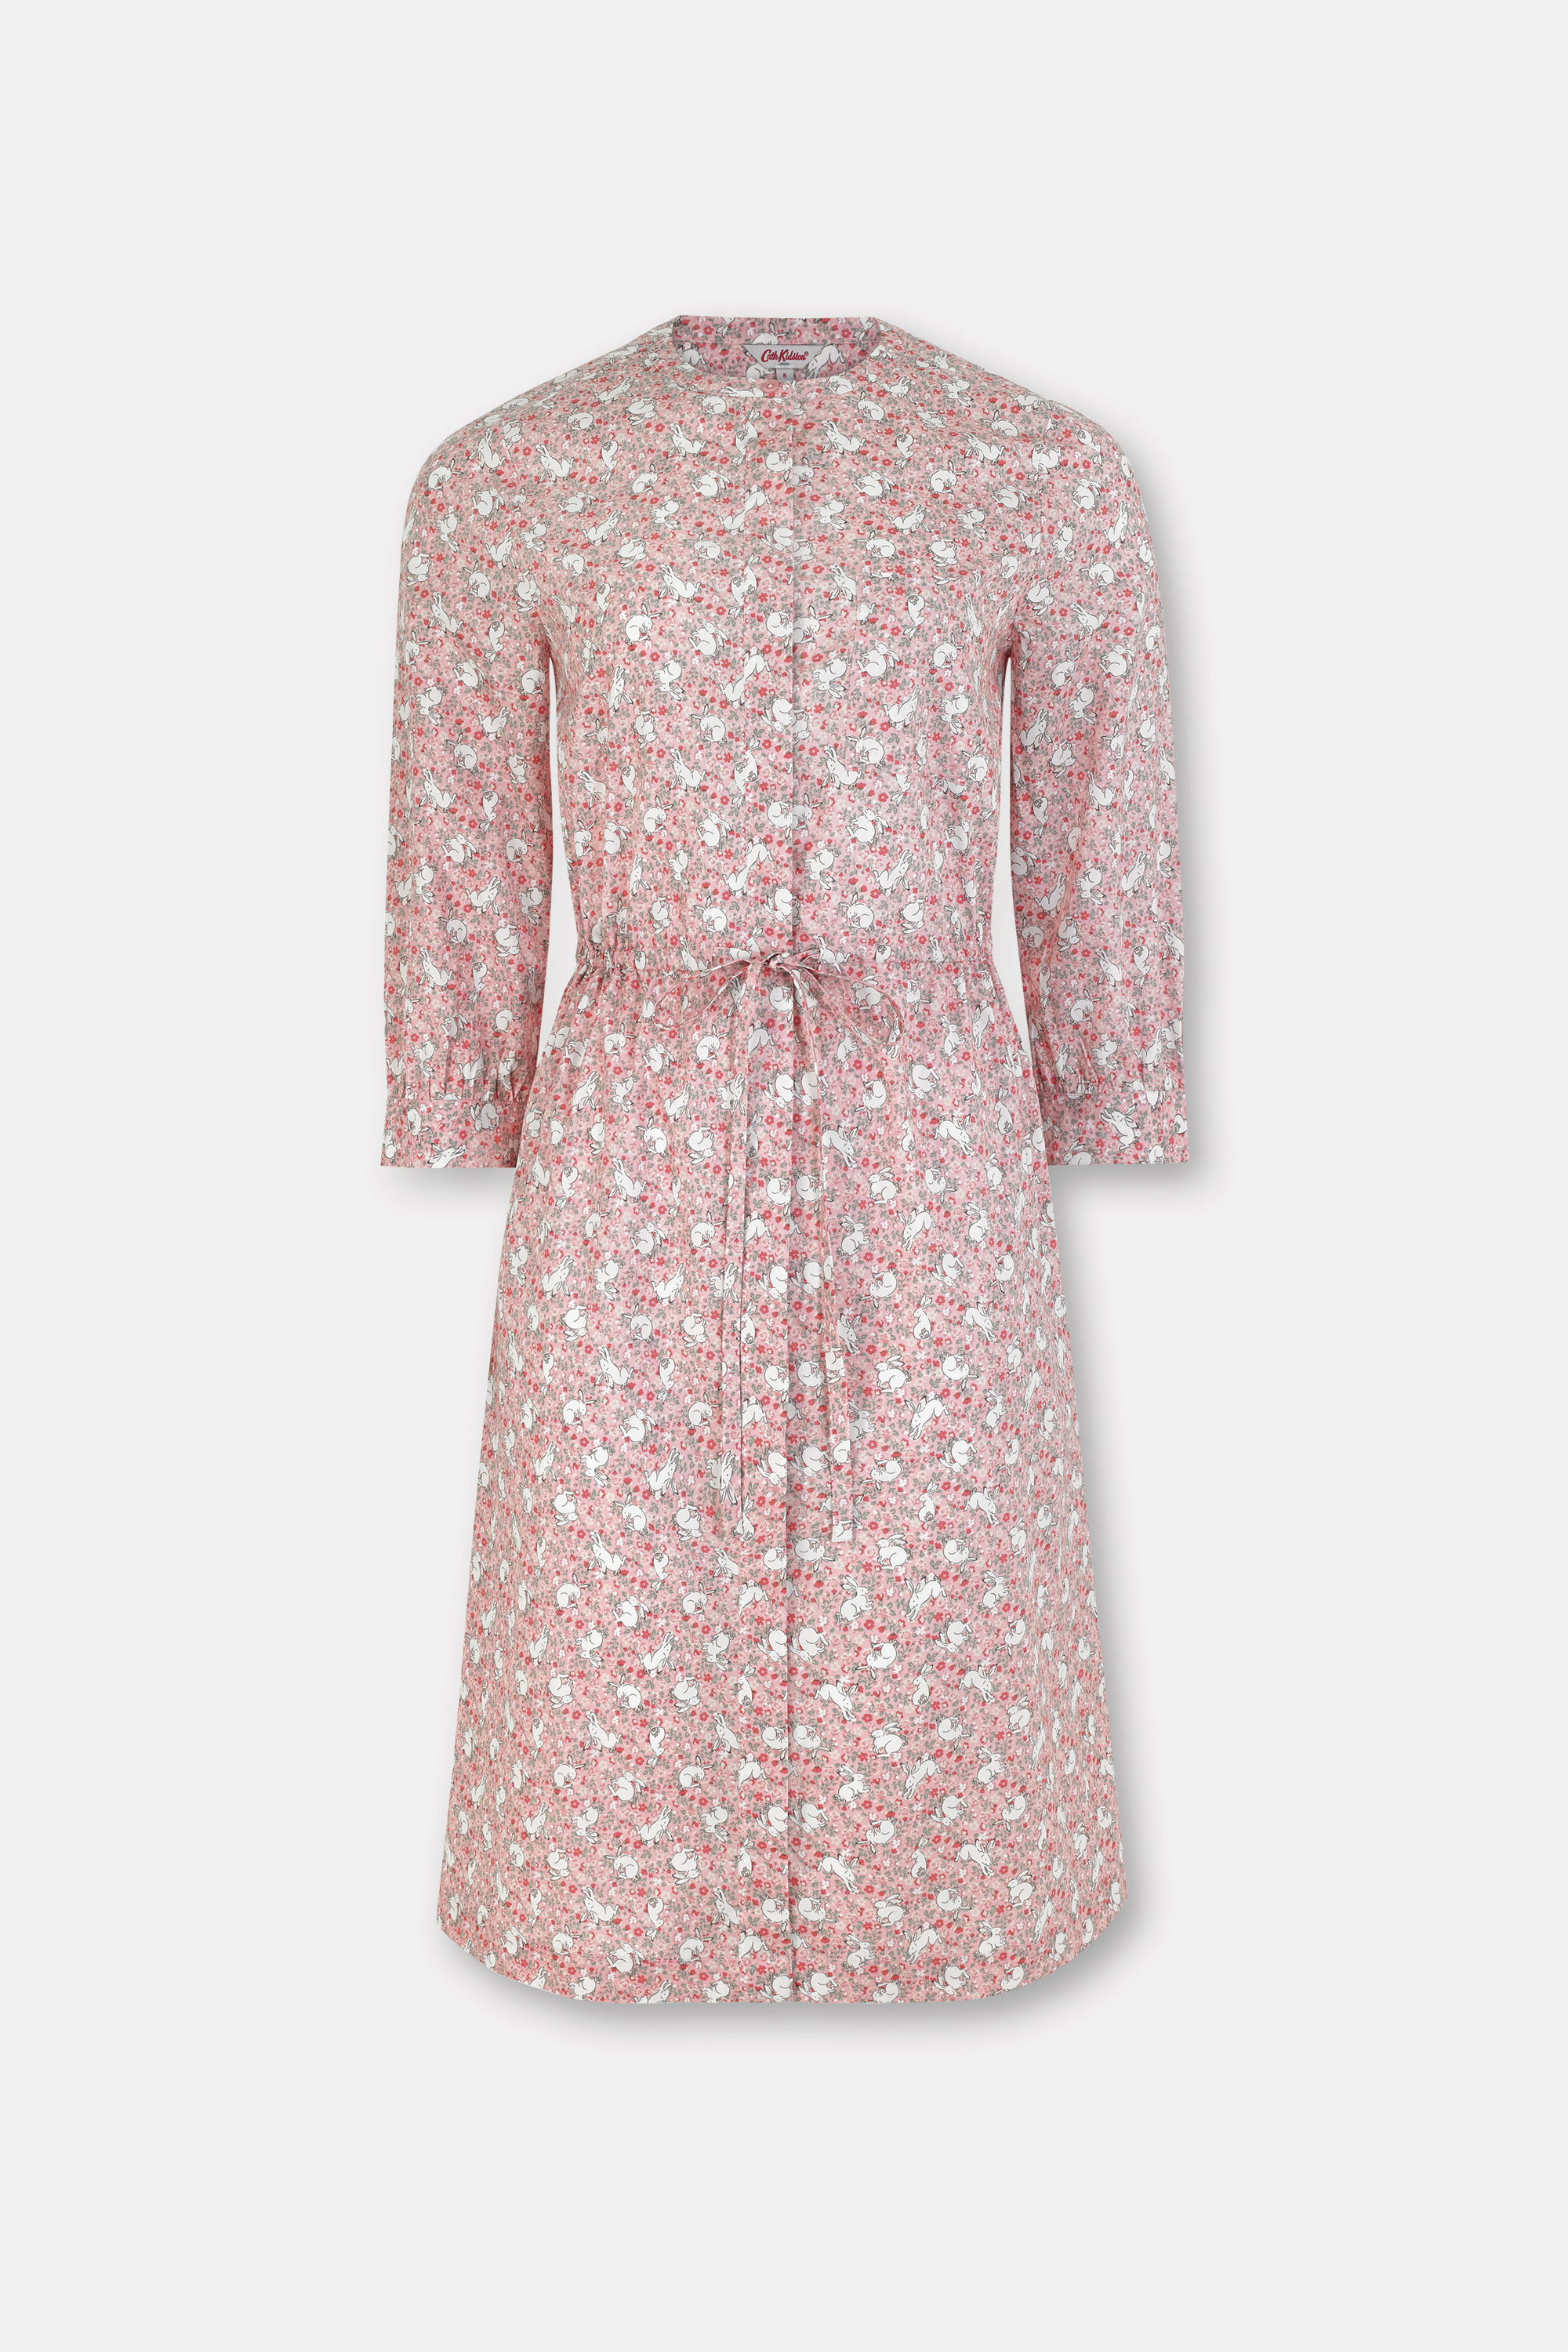 Cath Kidston Jumping Bunnies Cotton Drawcord Shirt Dress in Light Pink, 100% Cotton, 6